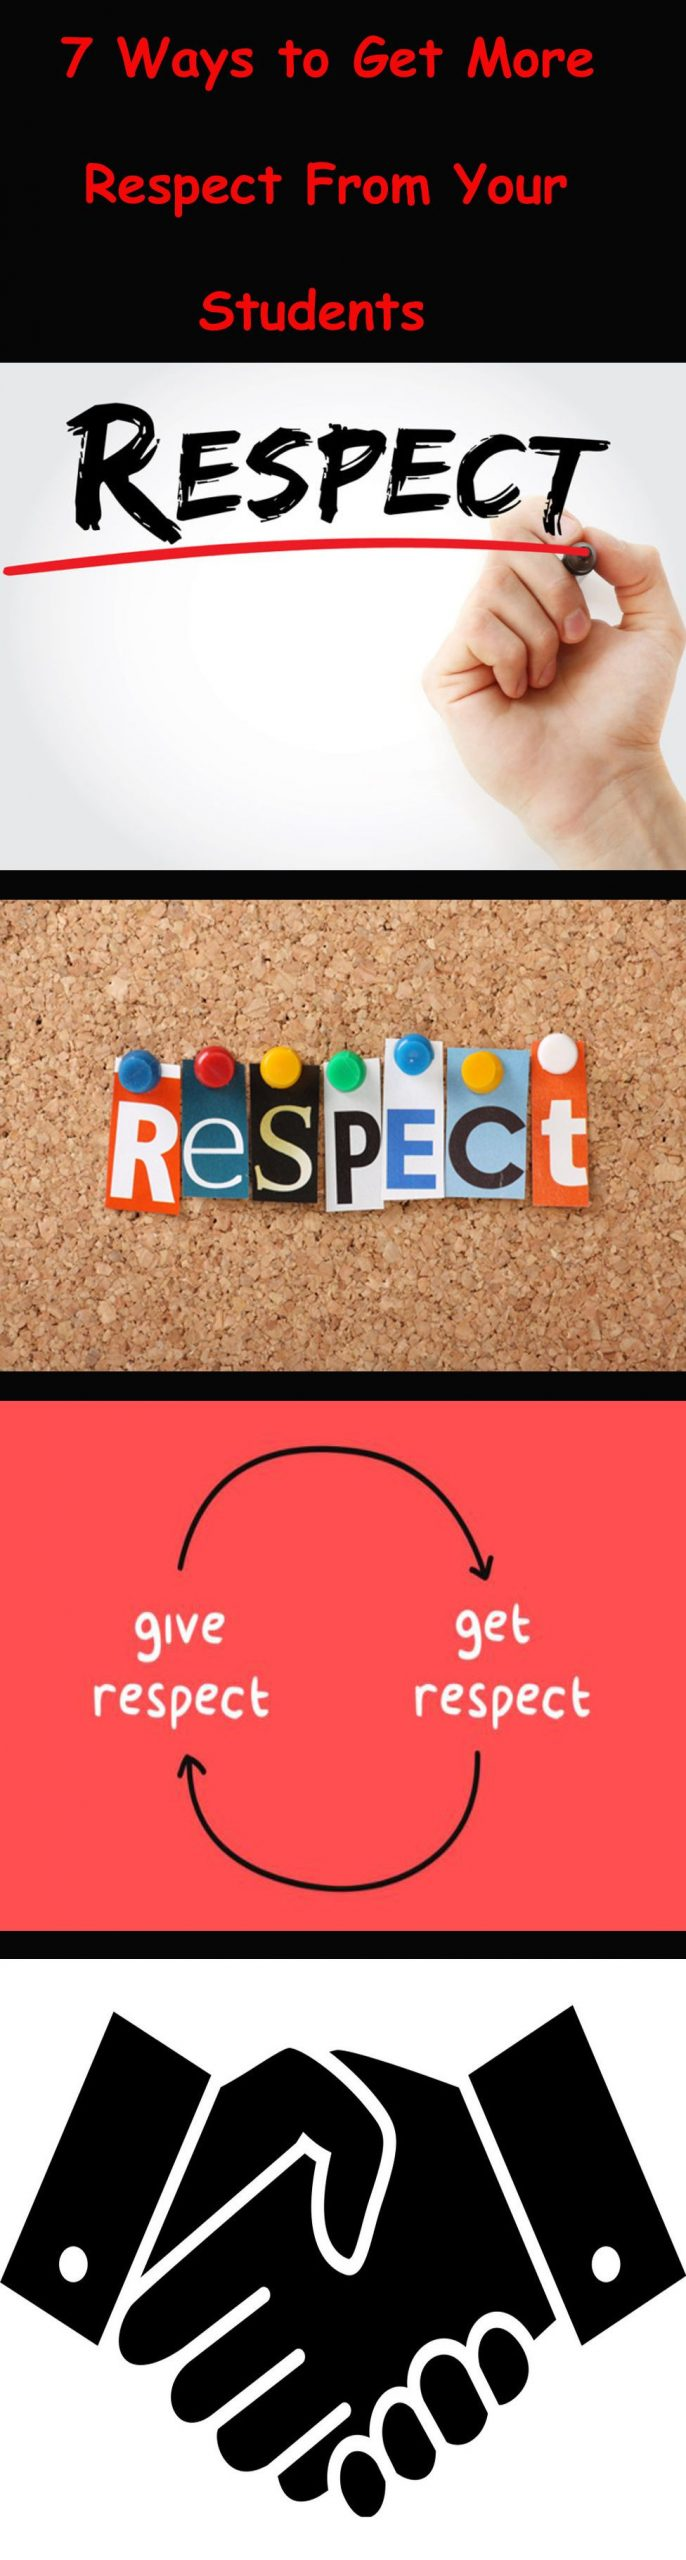 Get More Respect From Your Students Best Of 7 Ways to Get More Respect From Your Students